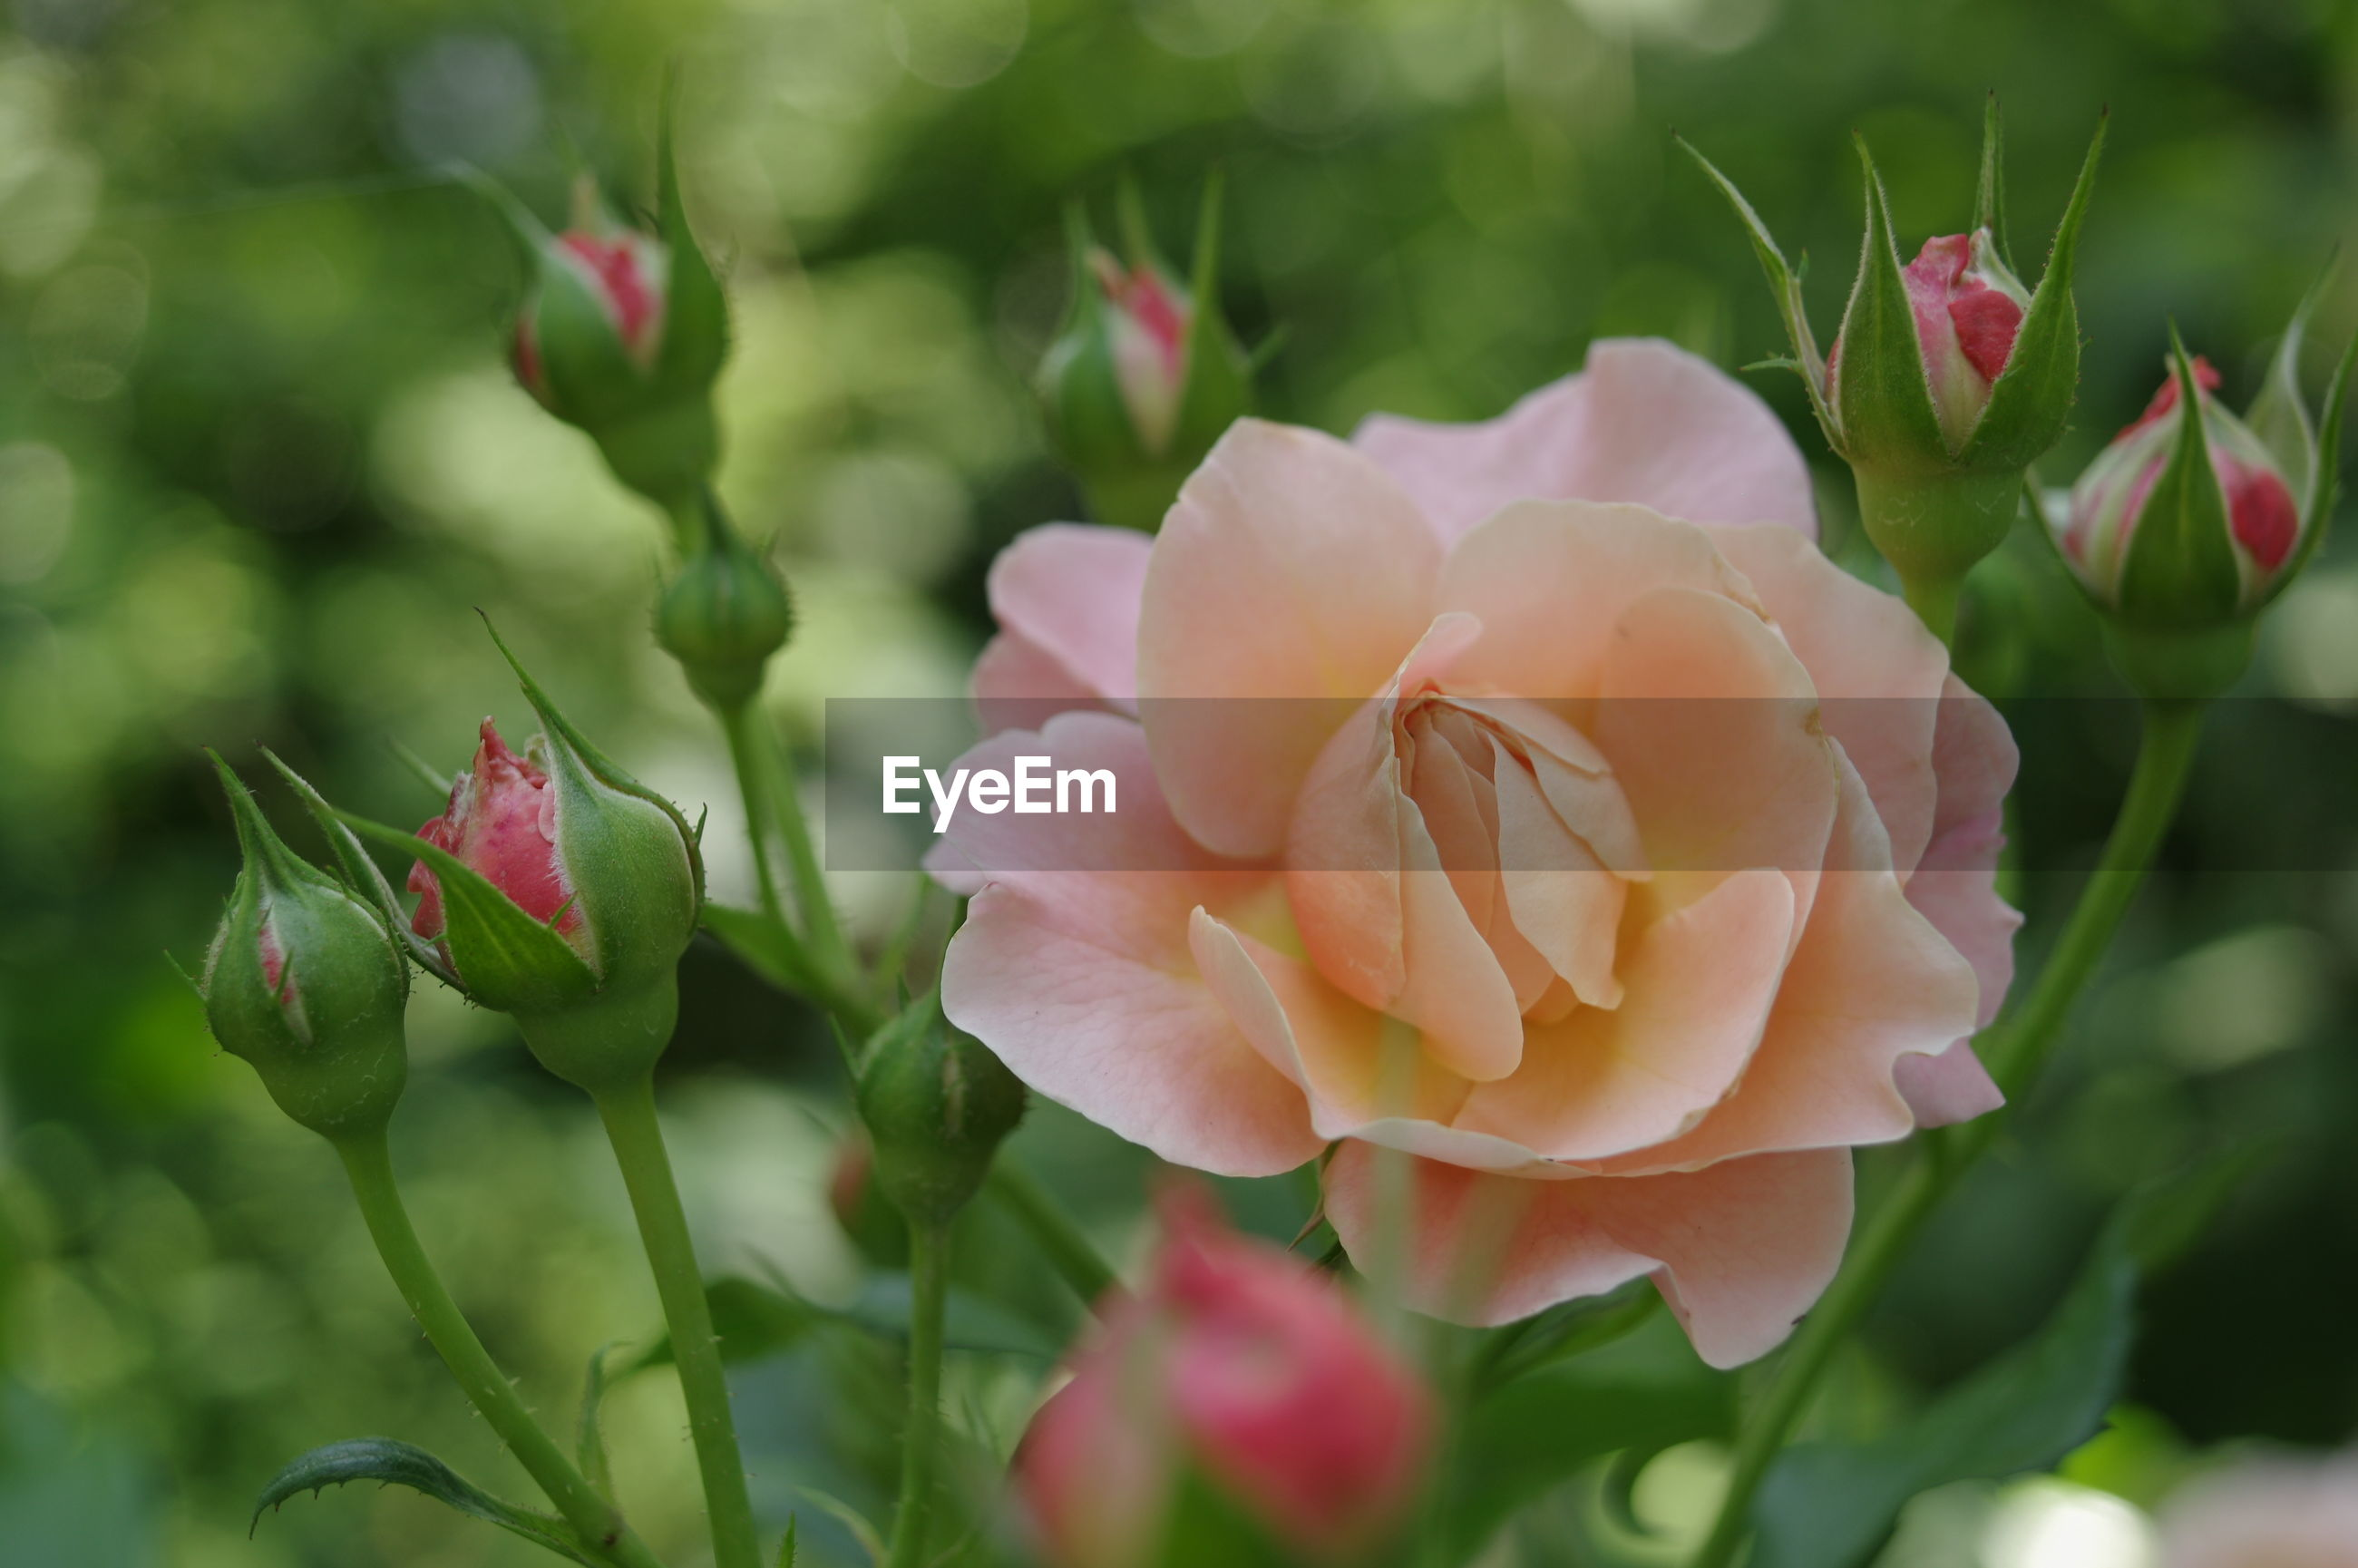 flower, petal, freshness, fragility, flower head, growth, beauty in nature, focus on foreground, close-up, blooming, nature, pink color, plant, leaf, rose - flower, in bloom, bud, park - man made space, day, outdoors